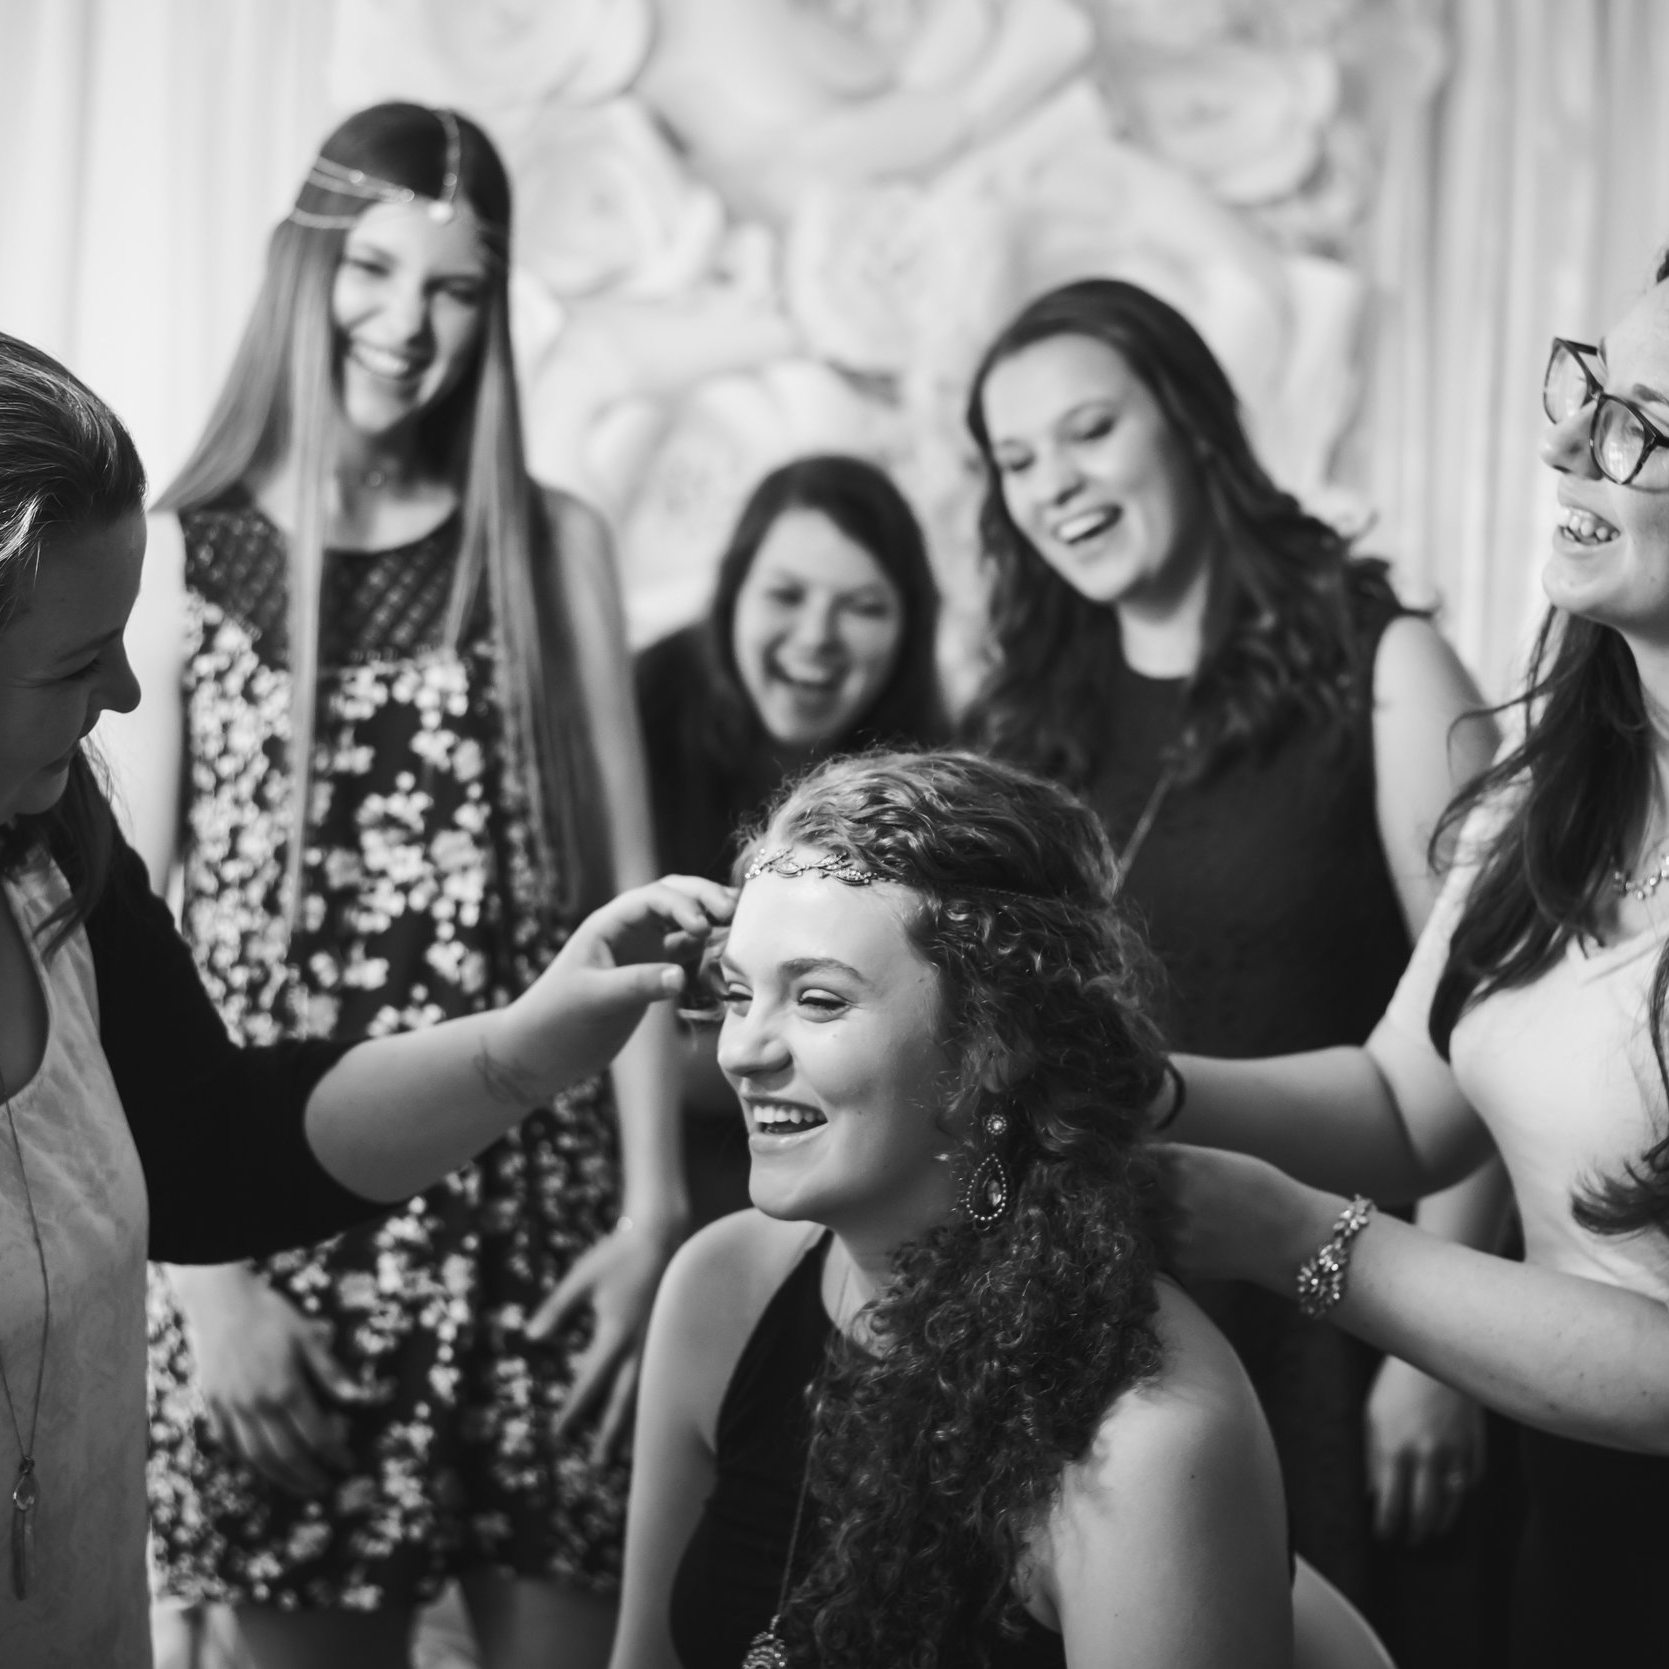 - The ultimate day out with friends. Hair/make up AND accessory styling included. Group and individual images included. Usually yields 30-40 proofing images/student.